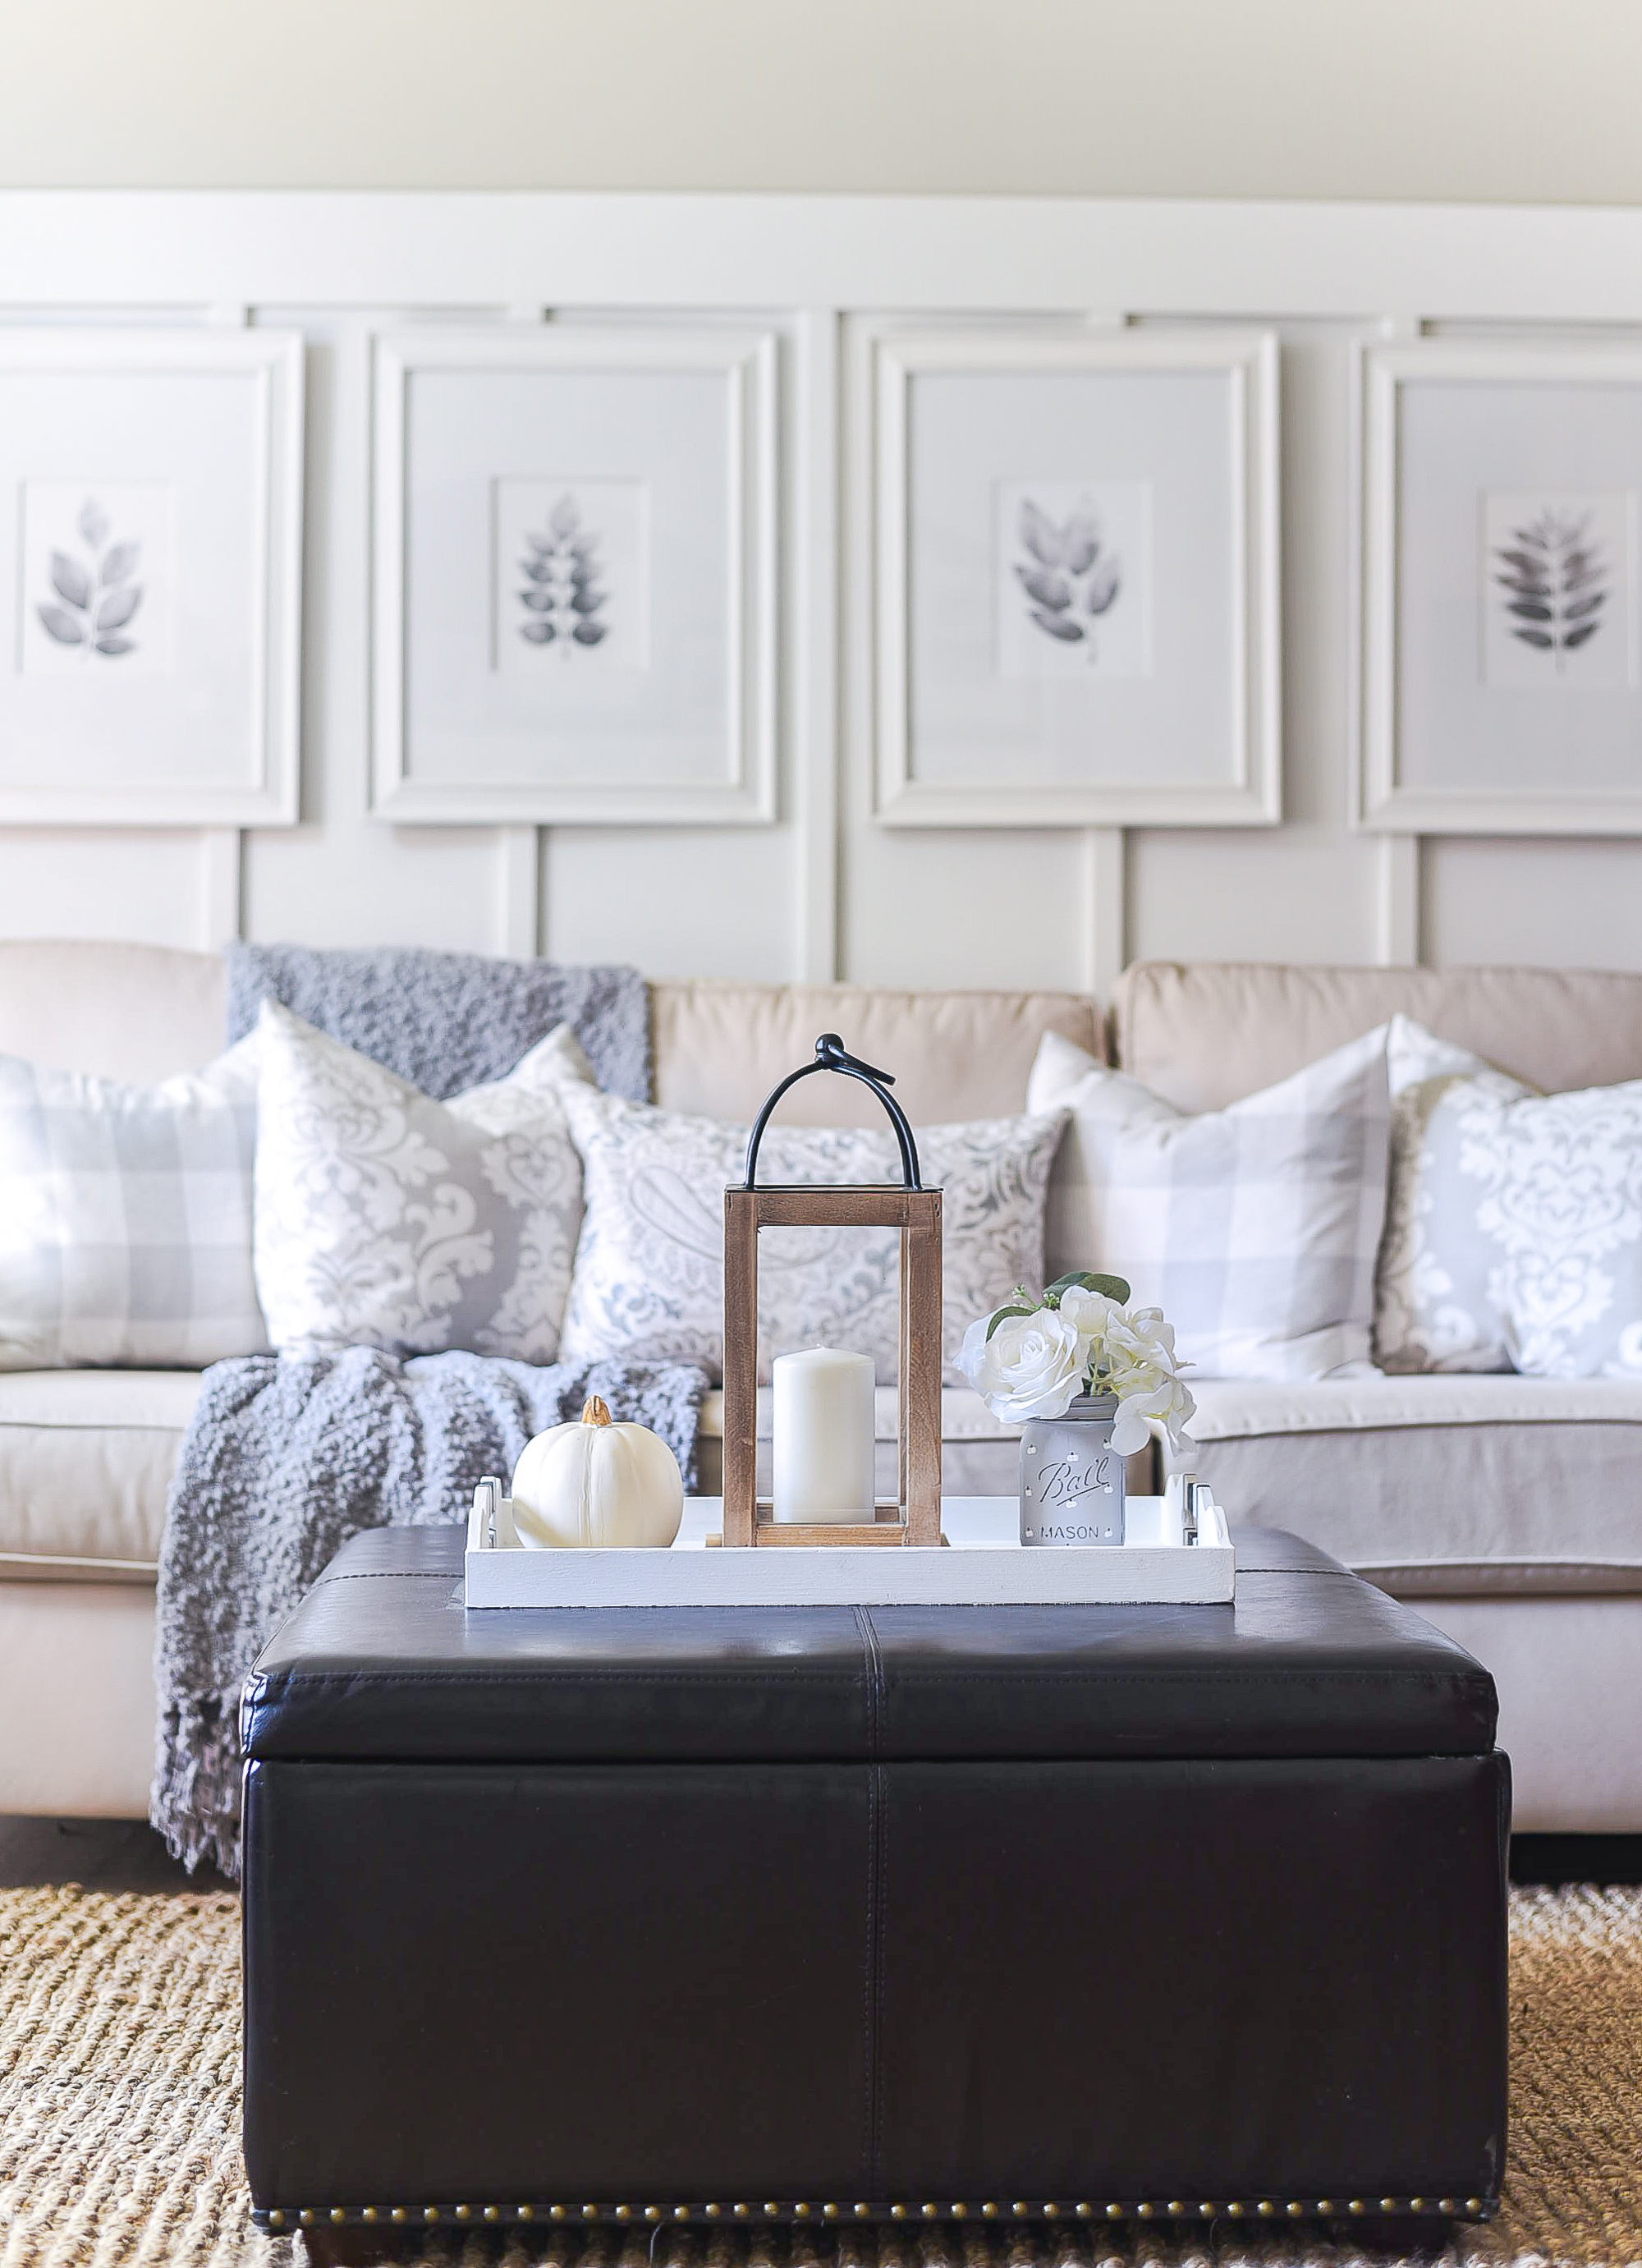 Fall in the Living Room - Neutral Fall Decor in White, Gray, Jute, Greige